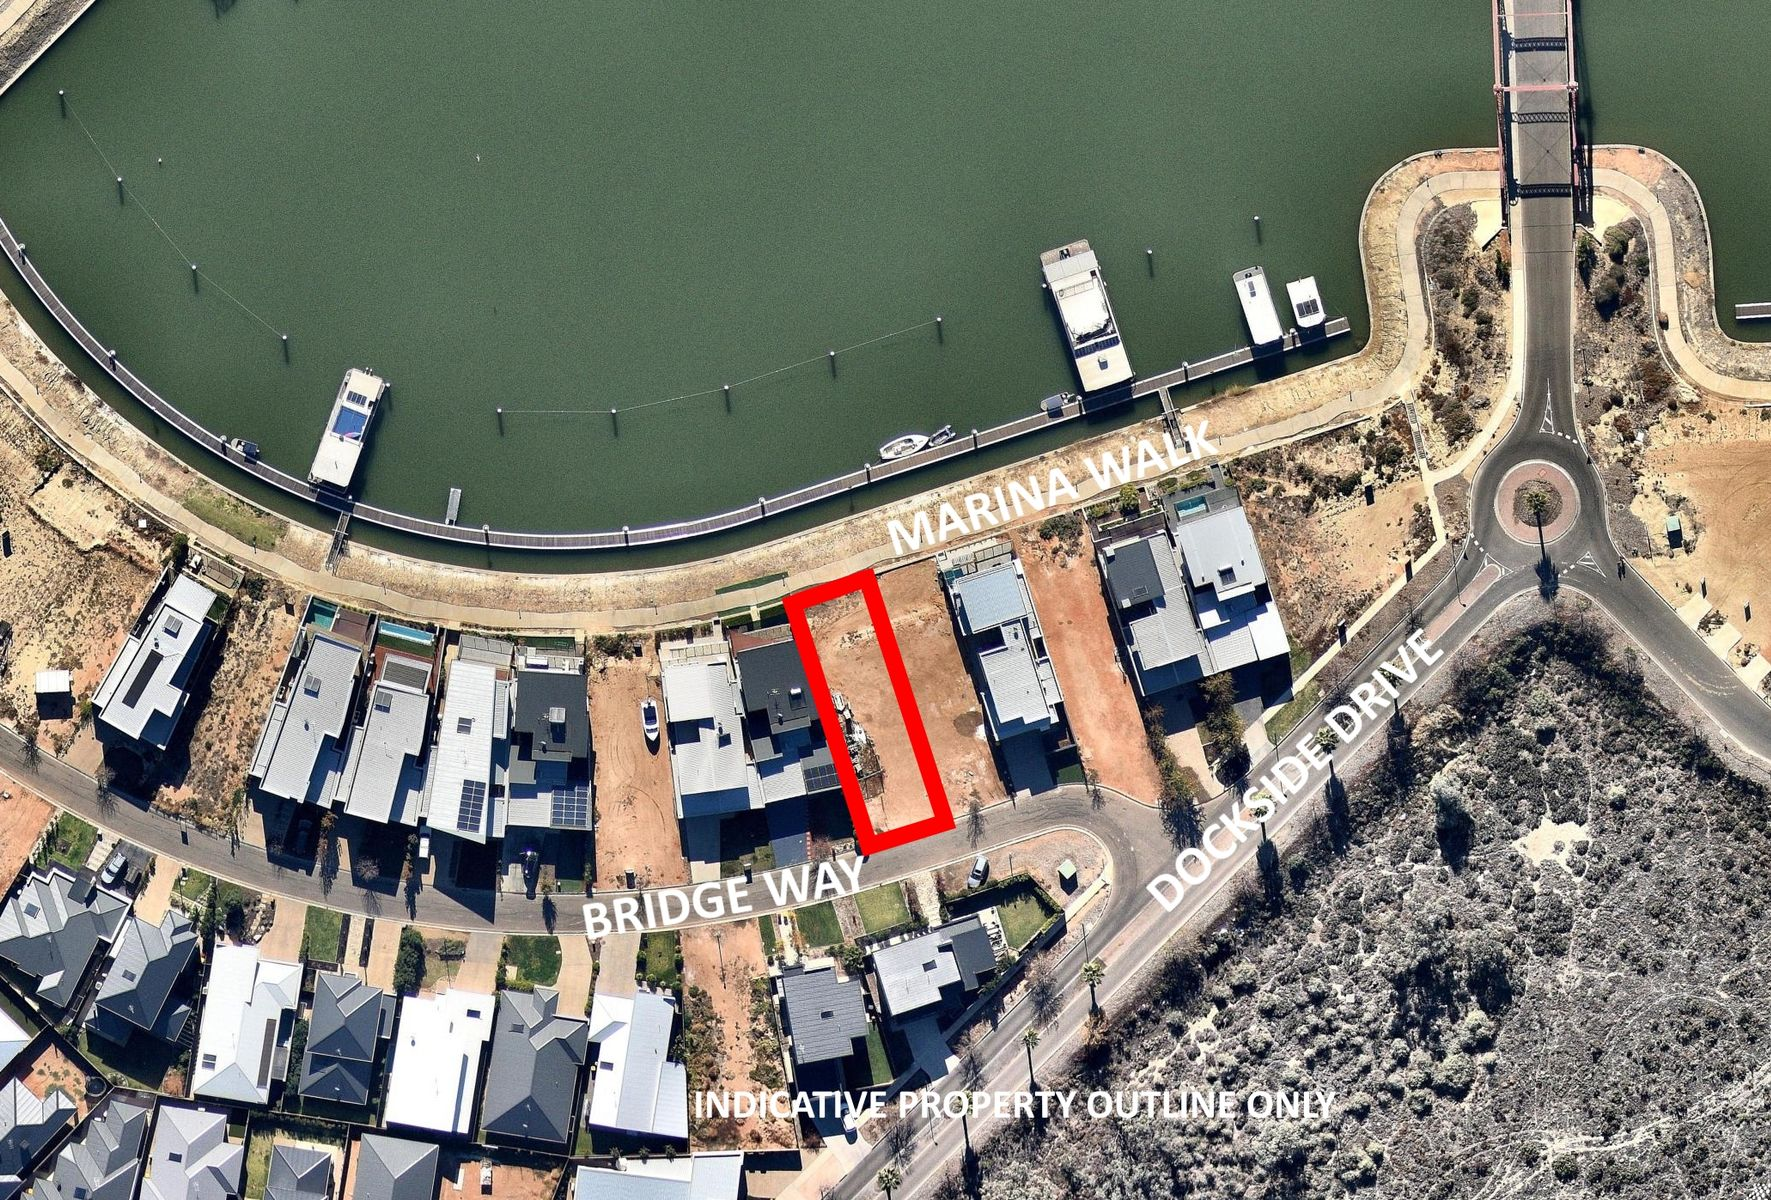 8 Bridge Way, Mildura, VIC 3500